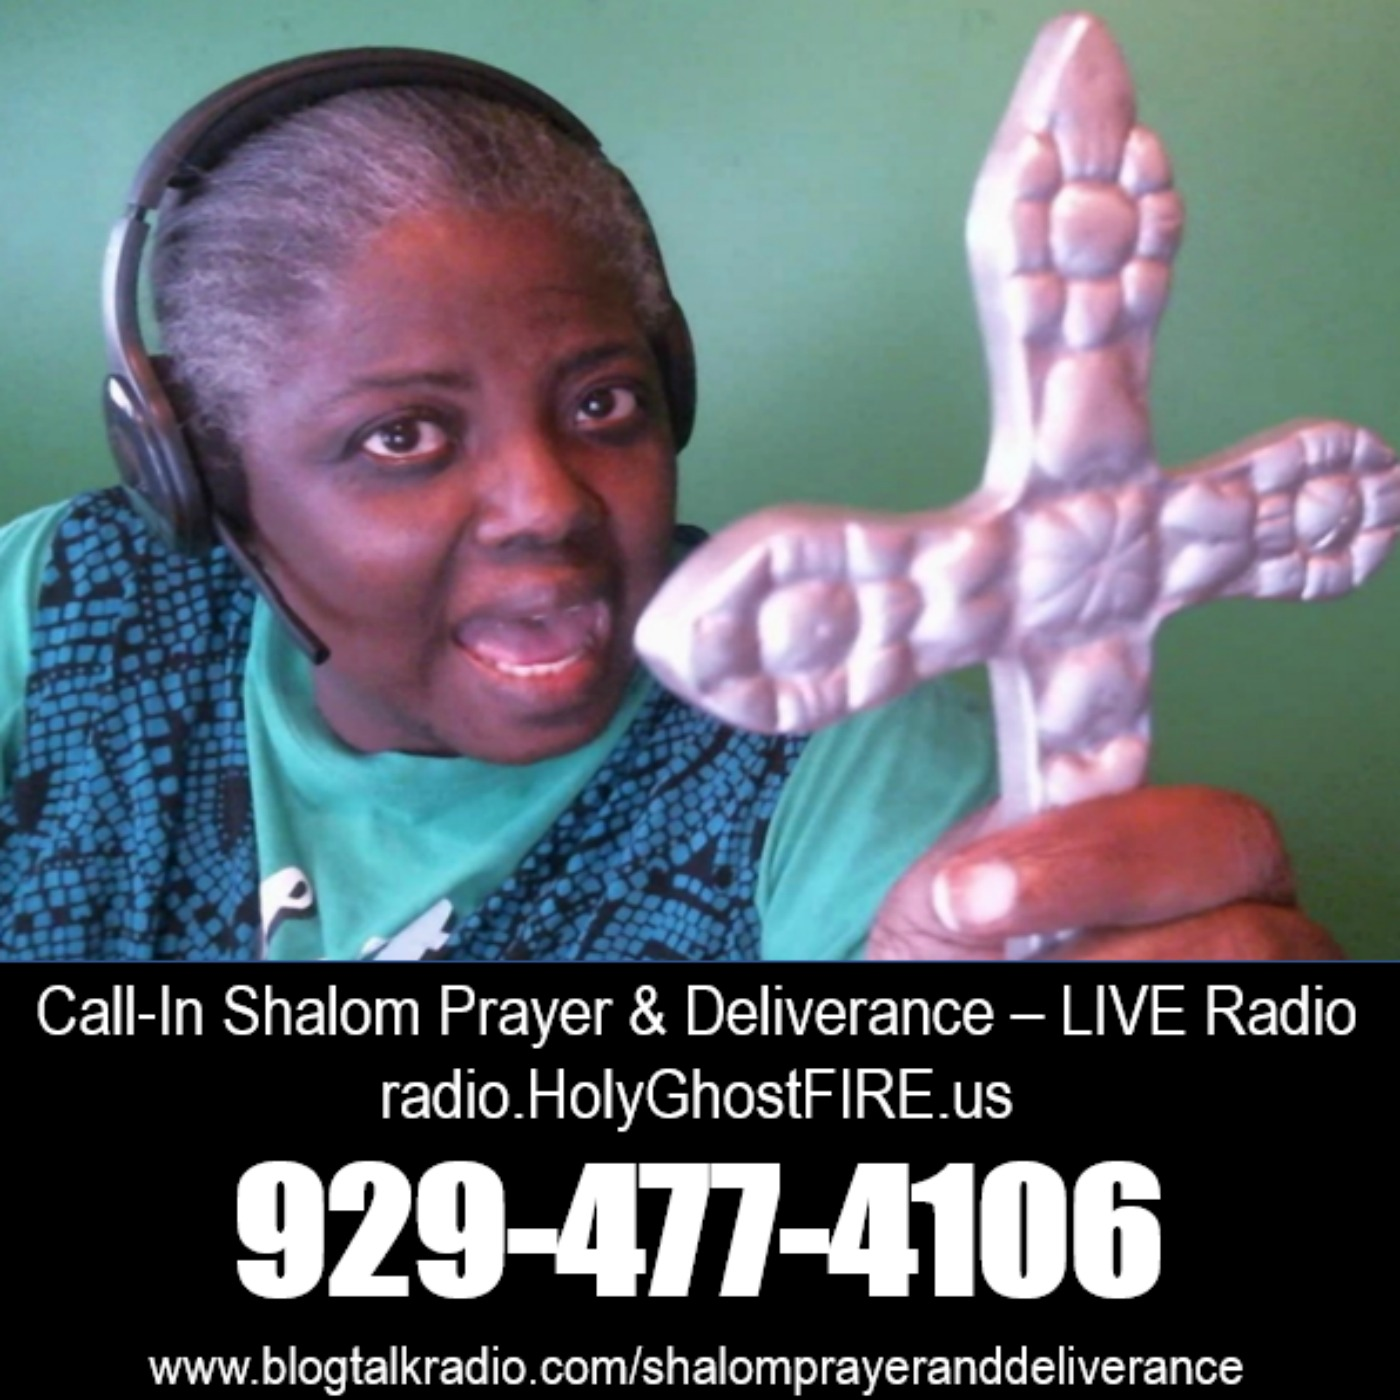 UPDATE on Call-In Deliverance - LIVE Radio (Audio Only)